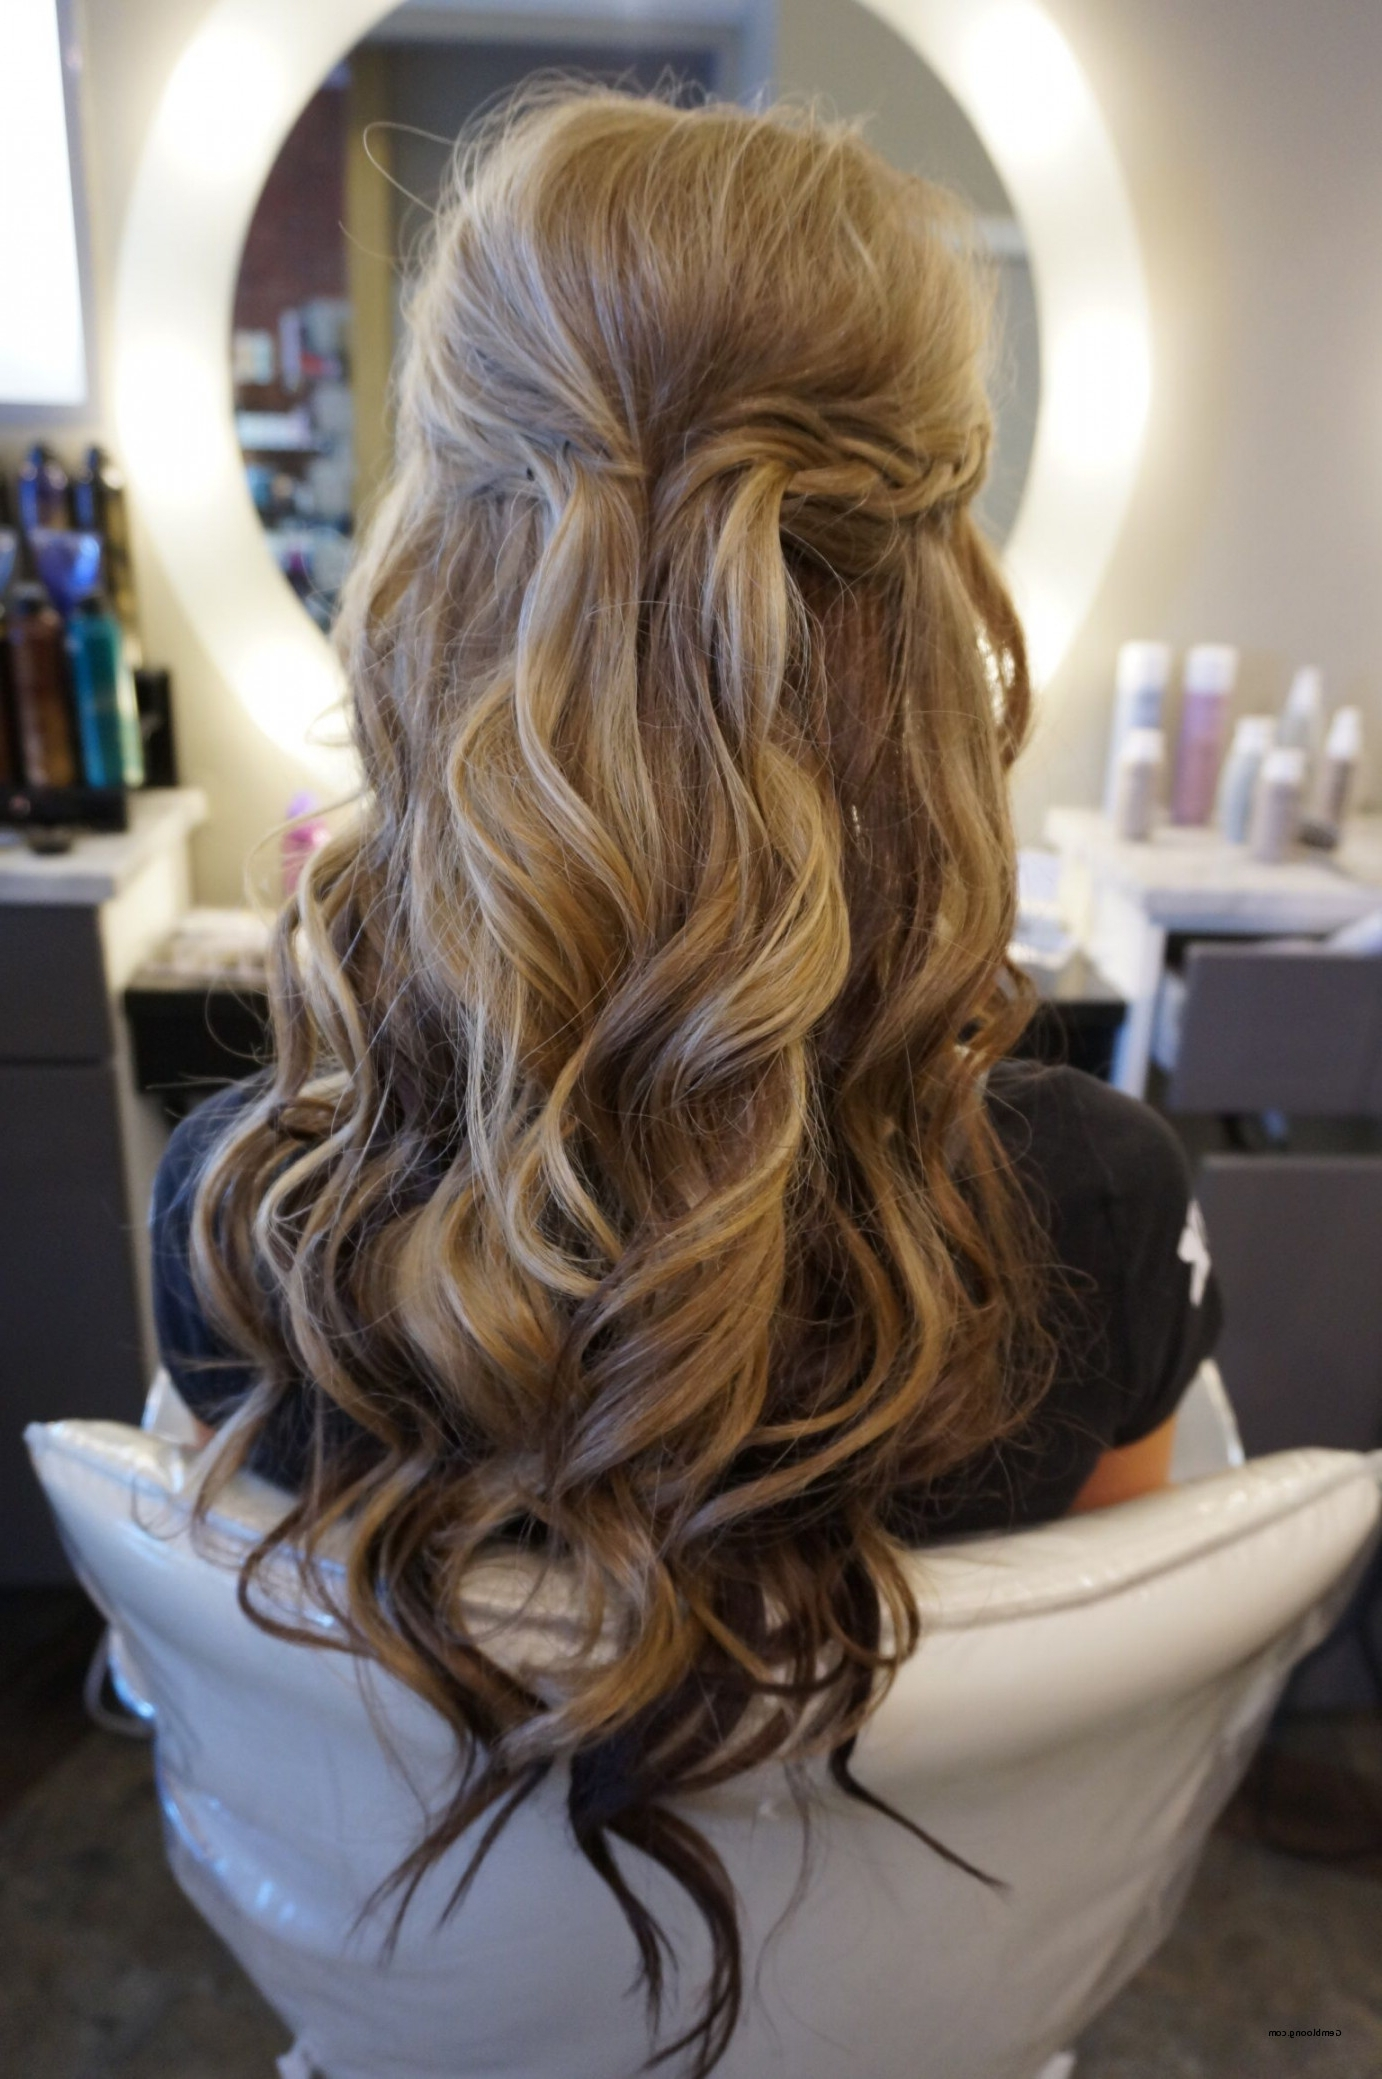 Newest Wedding Hairstyles For Long Loose Curls Hair Regarding Wedding Hairstyles Loose Curls Unique Long Hair With Loose Curls (View 12 of 15)